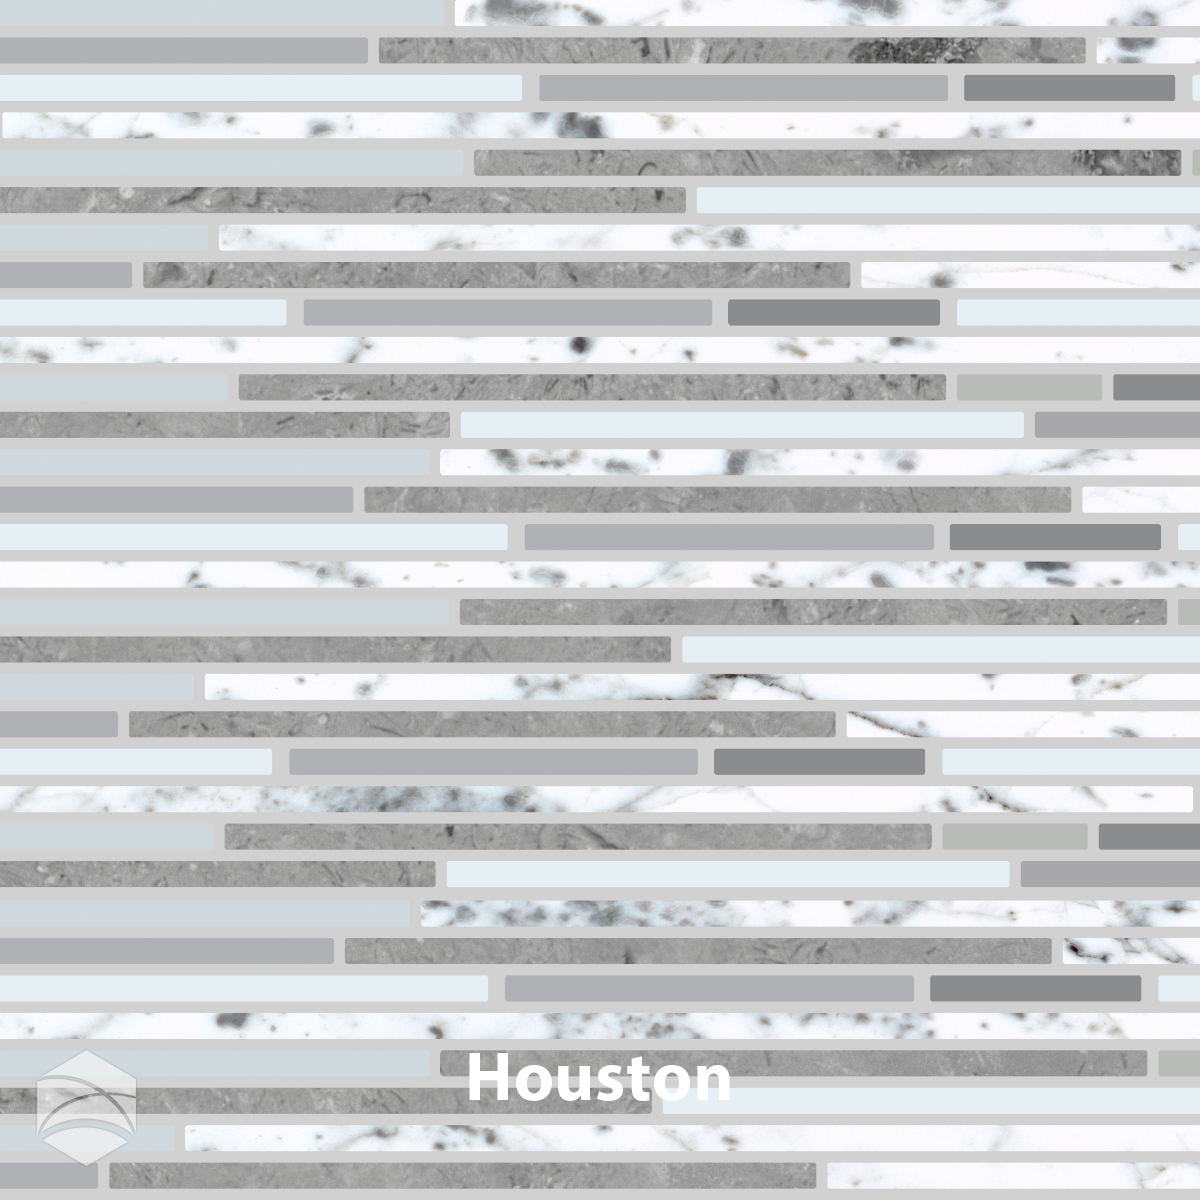 Houston_Stacked_V2_12x12.jpg